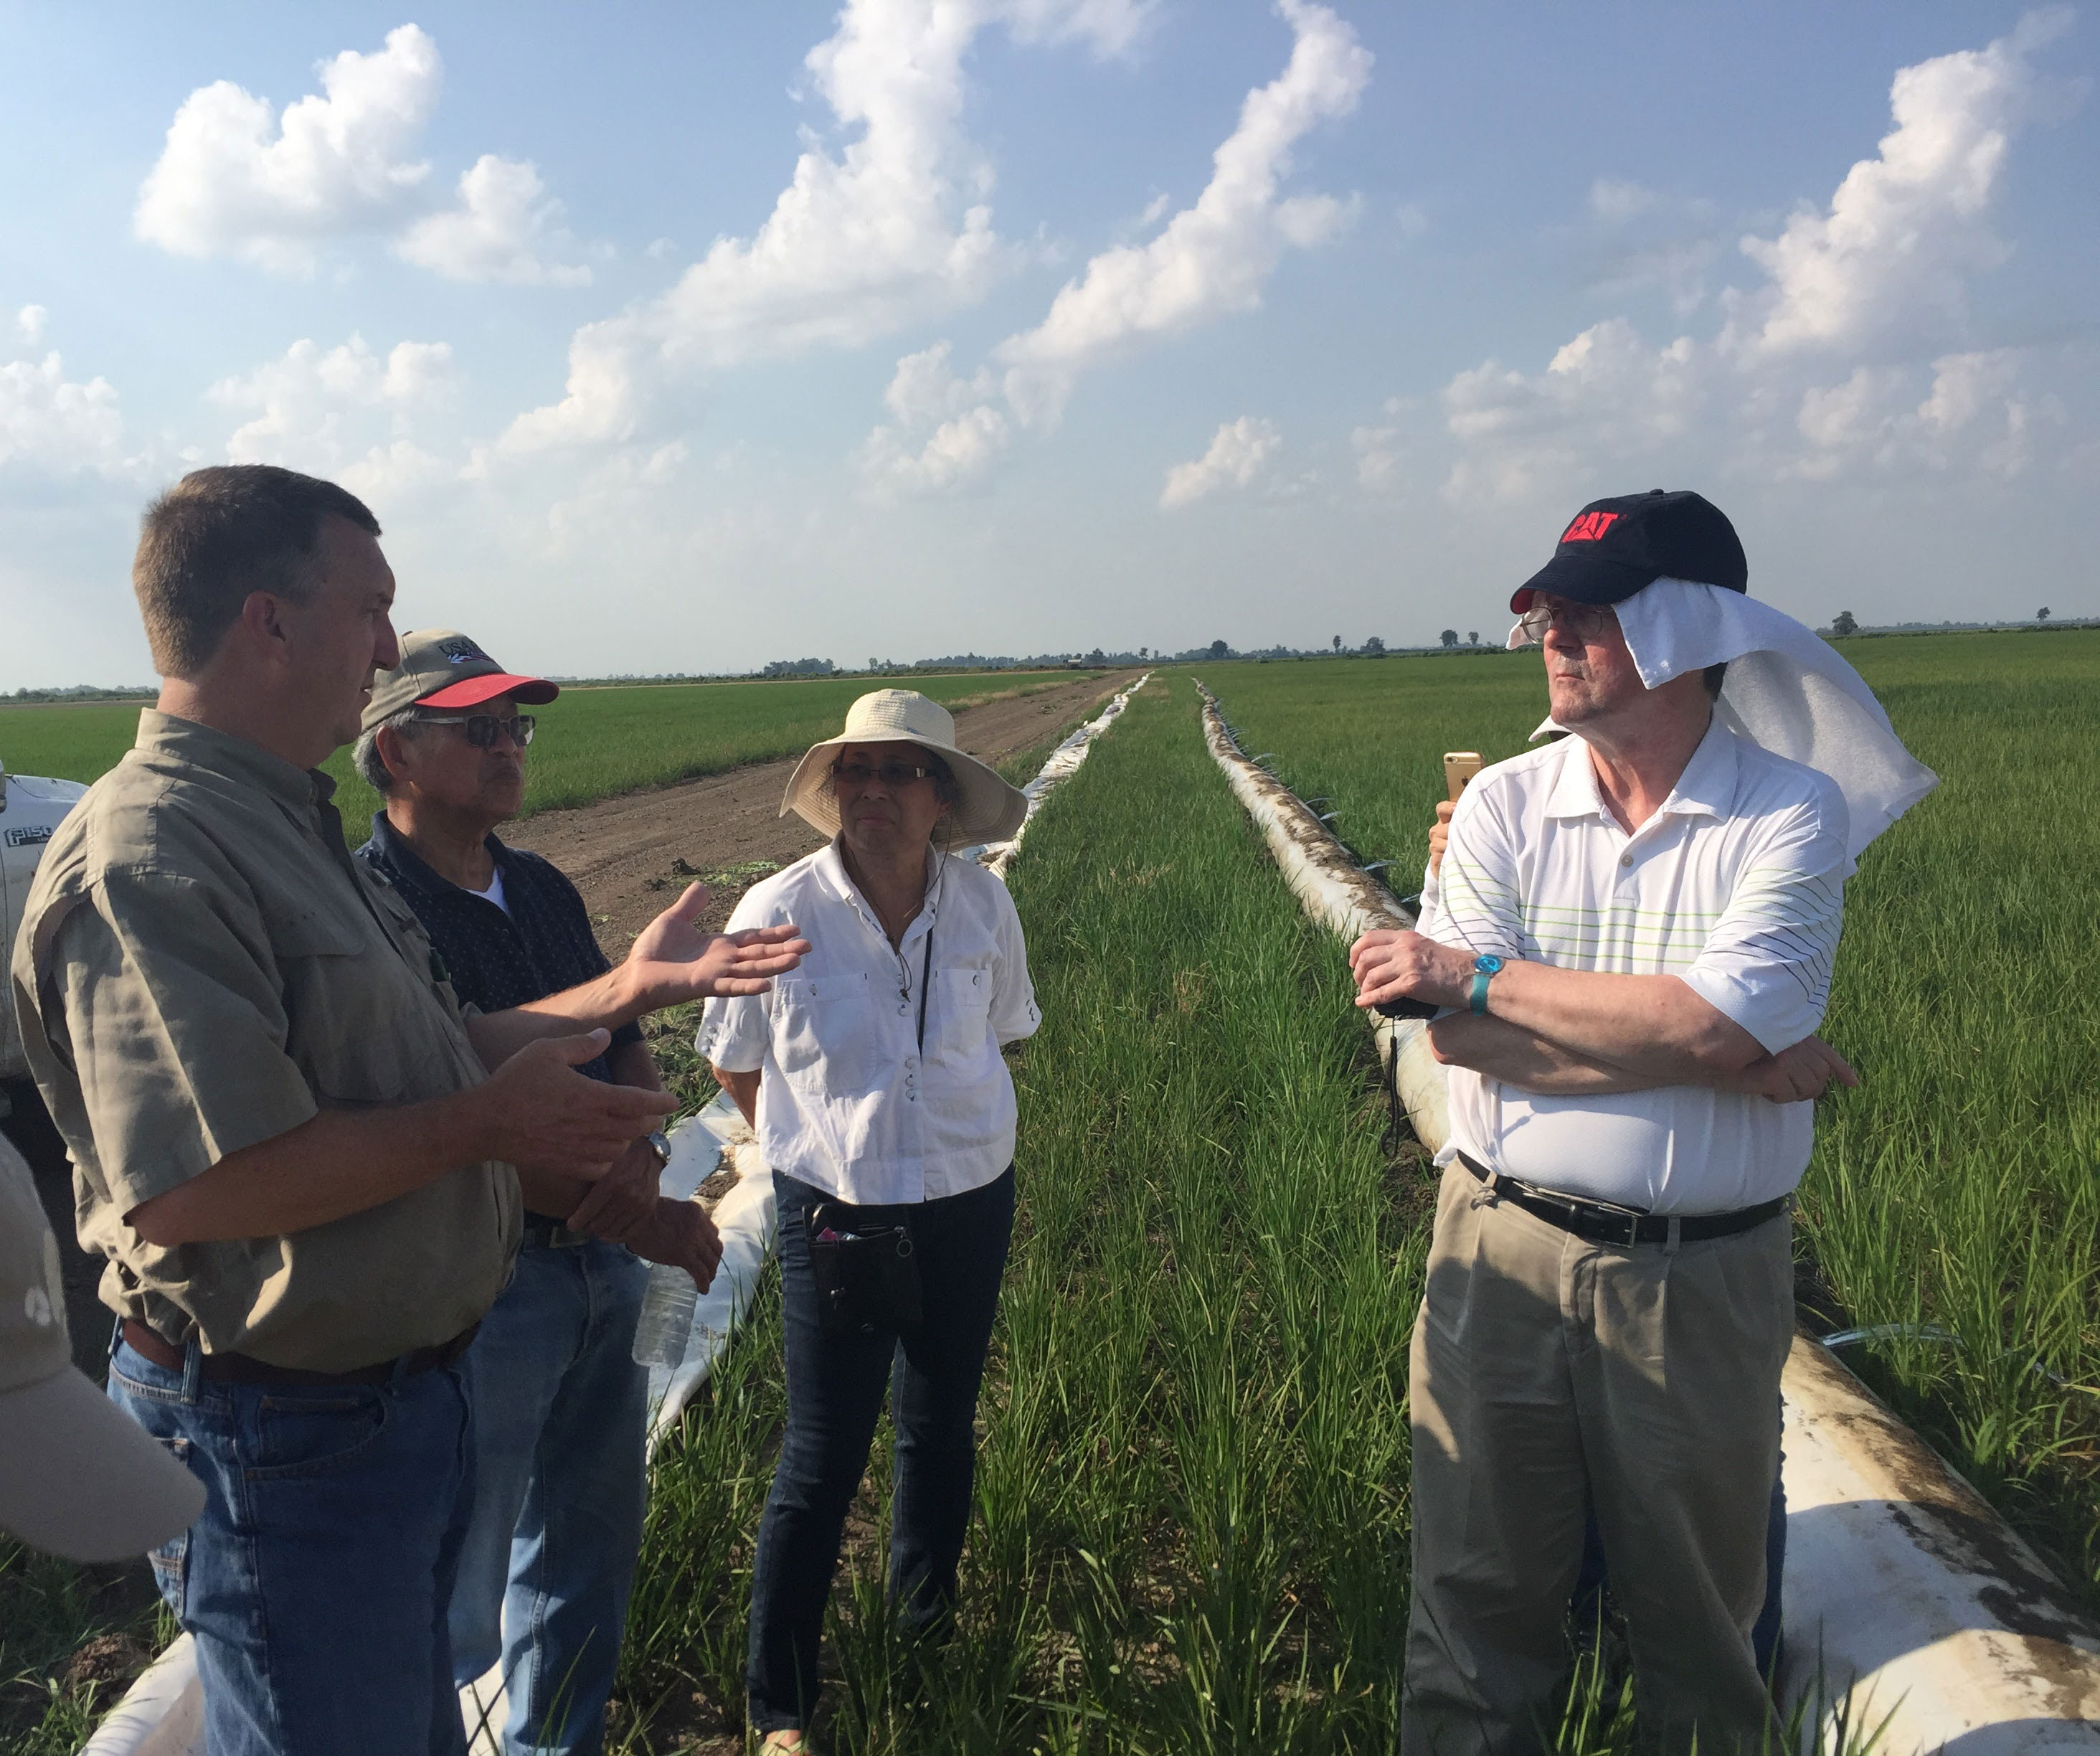 People listening to farmer talk about irrigation, standing in rice field w/water pipes